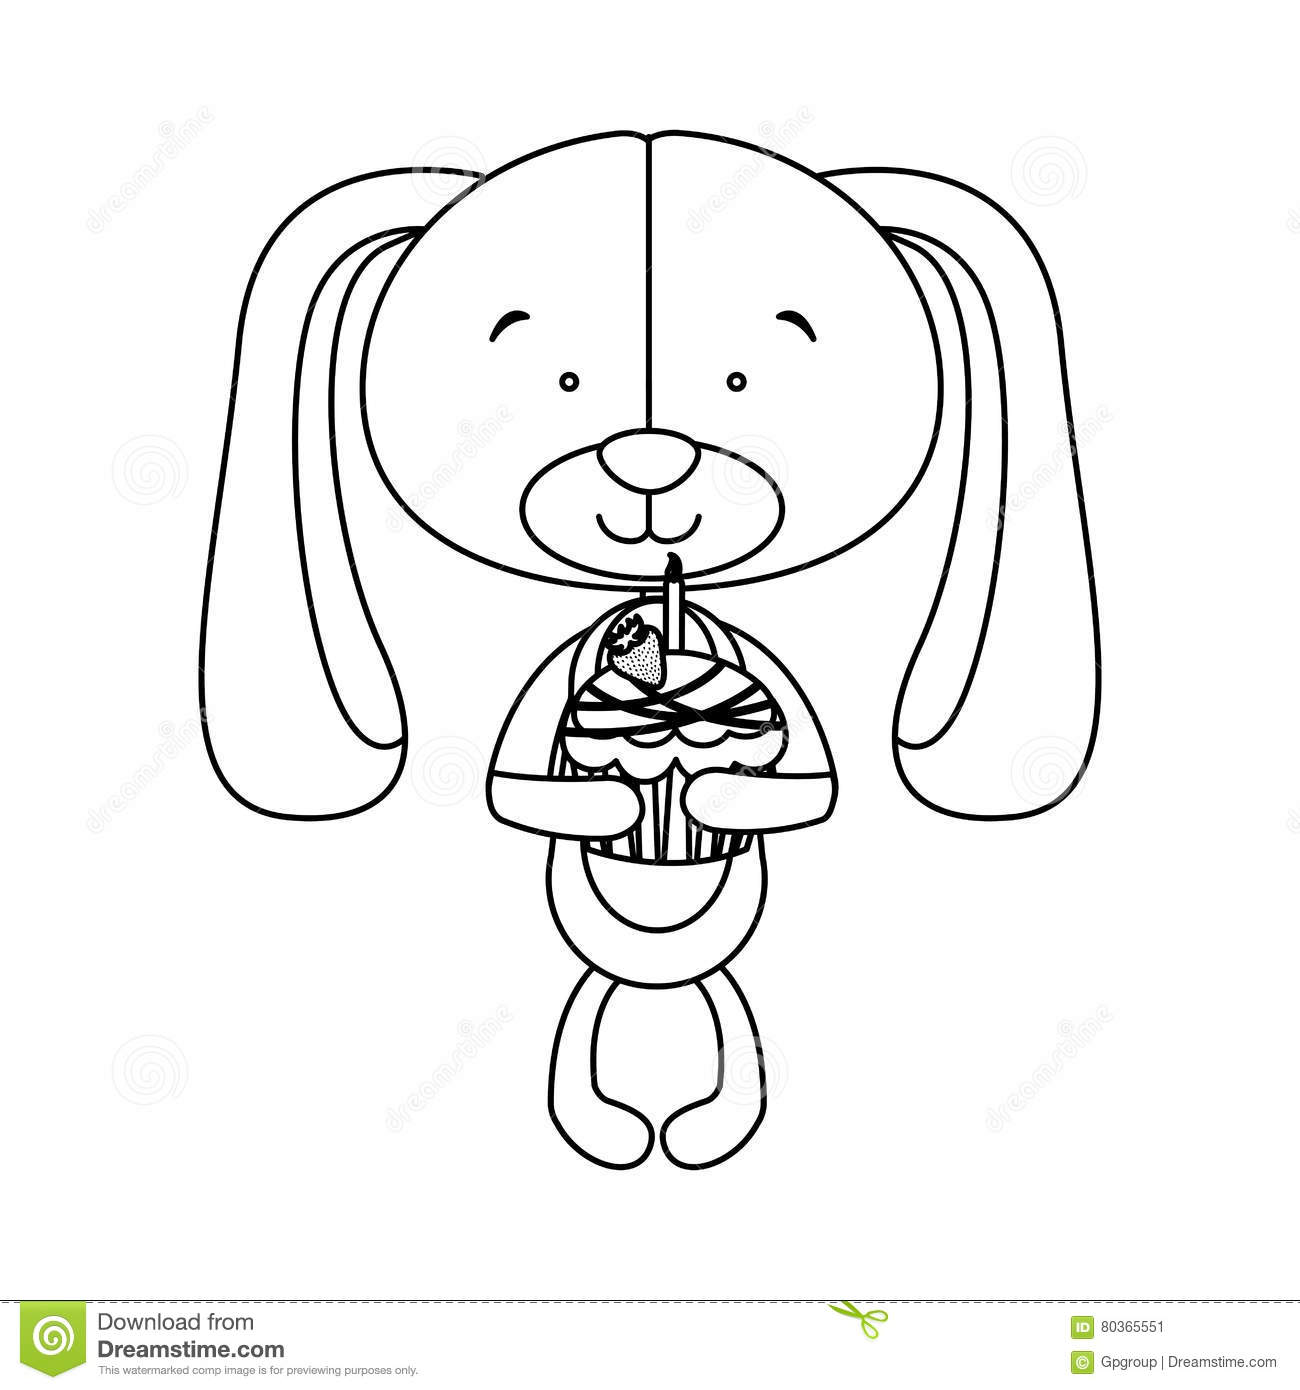 Dog Cartoon Character Holding Birthday Cake Icon Image Illustration Design